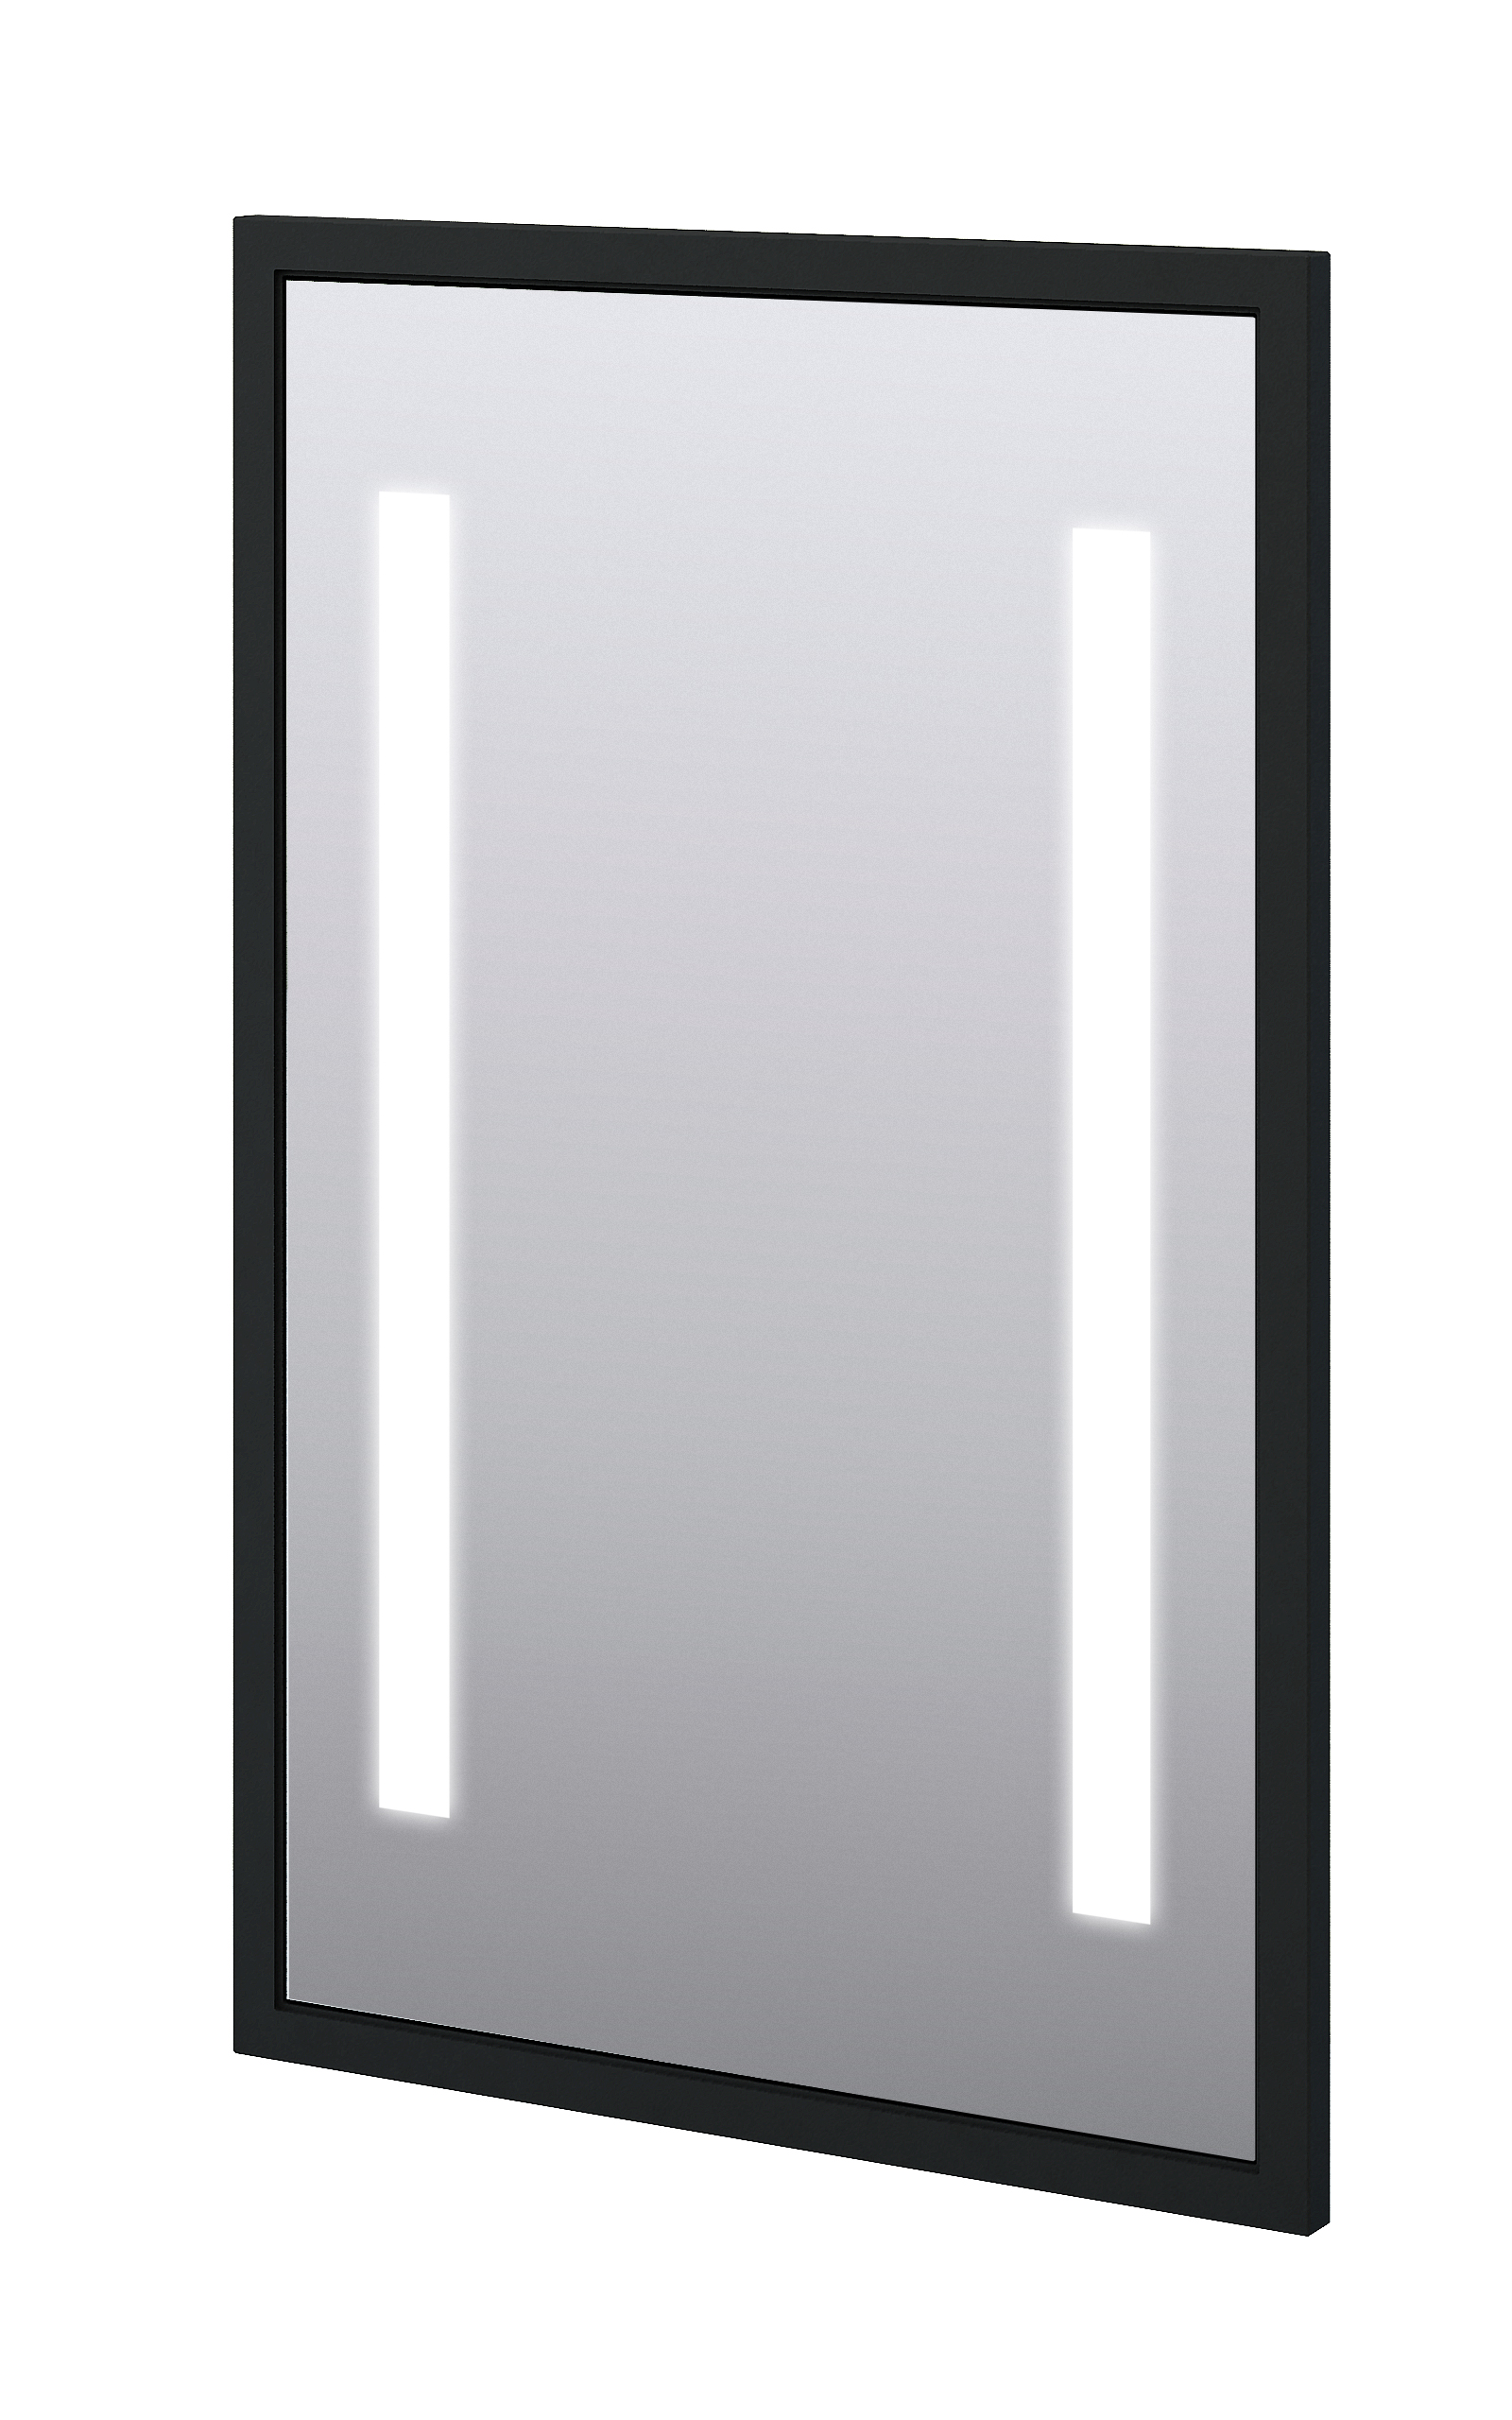 "Baden Haus 45015 23.2""W x 35.4""H Mirror LED Matt Black"